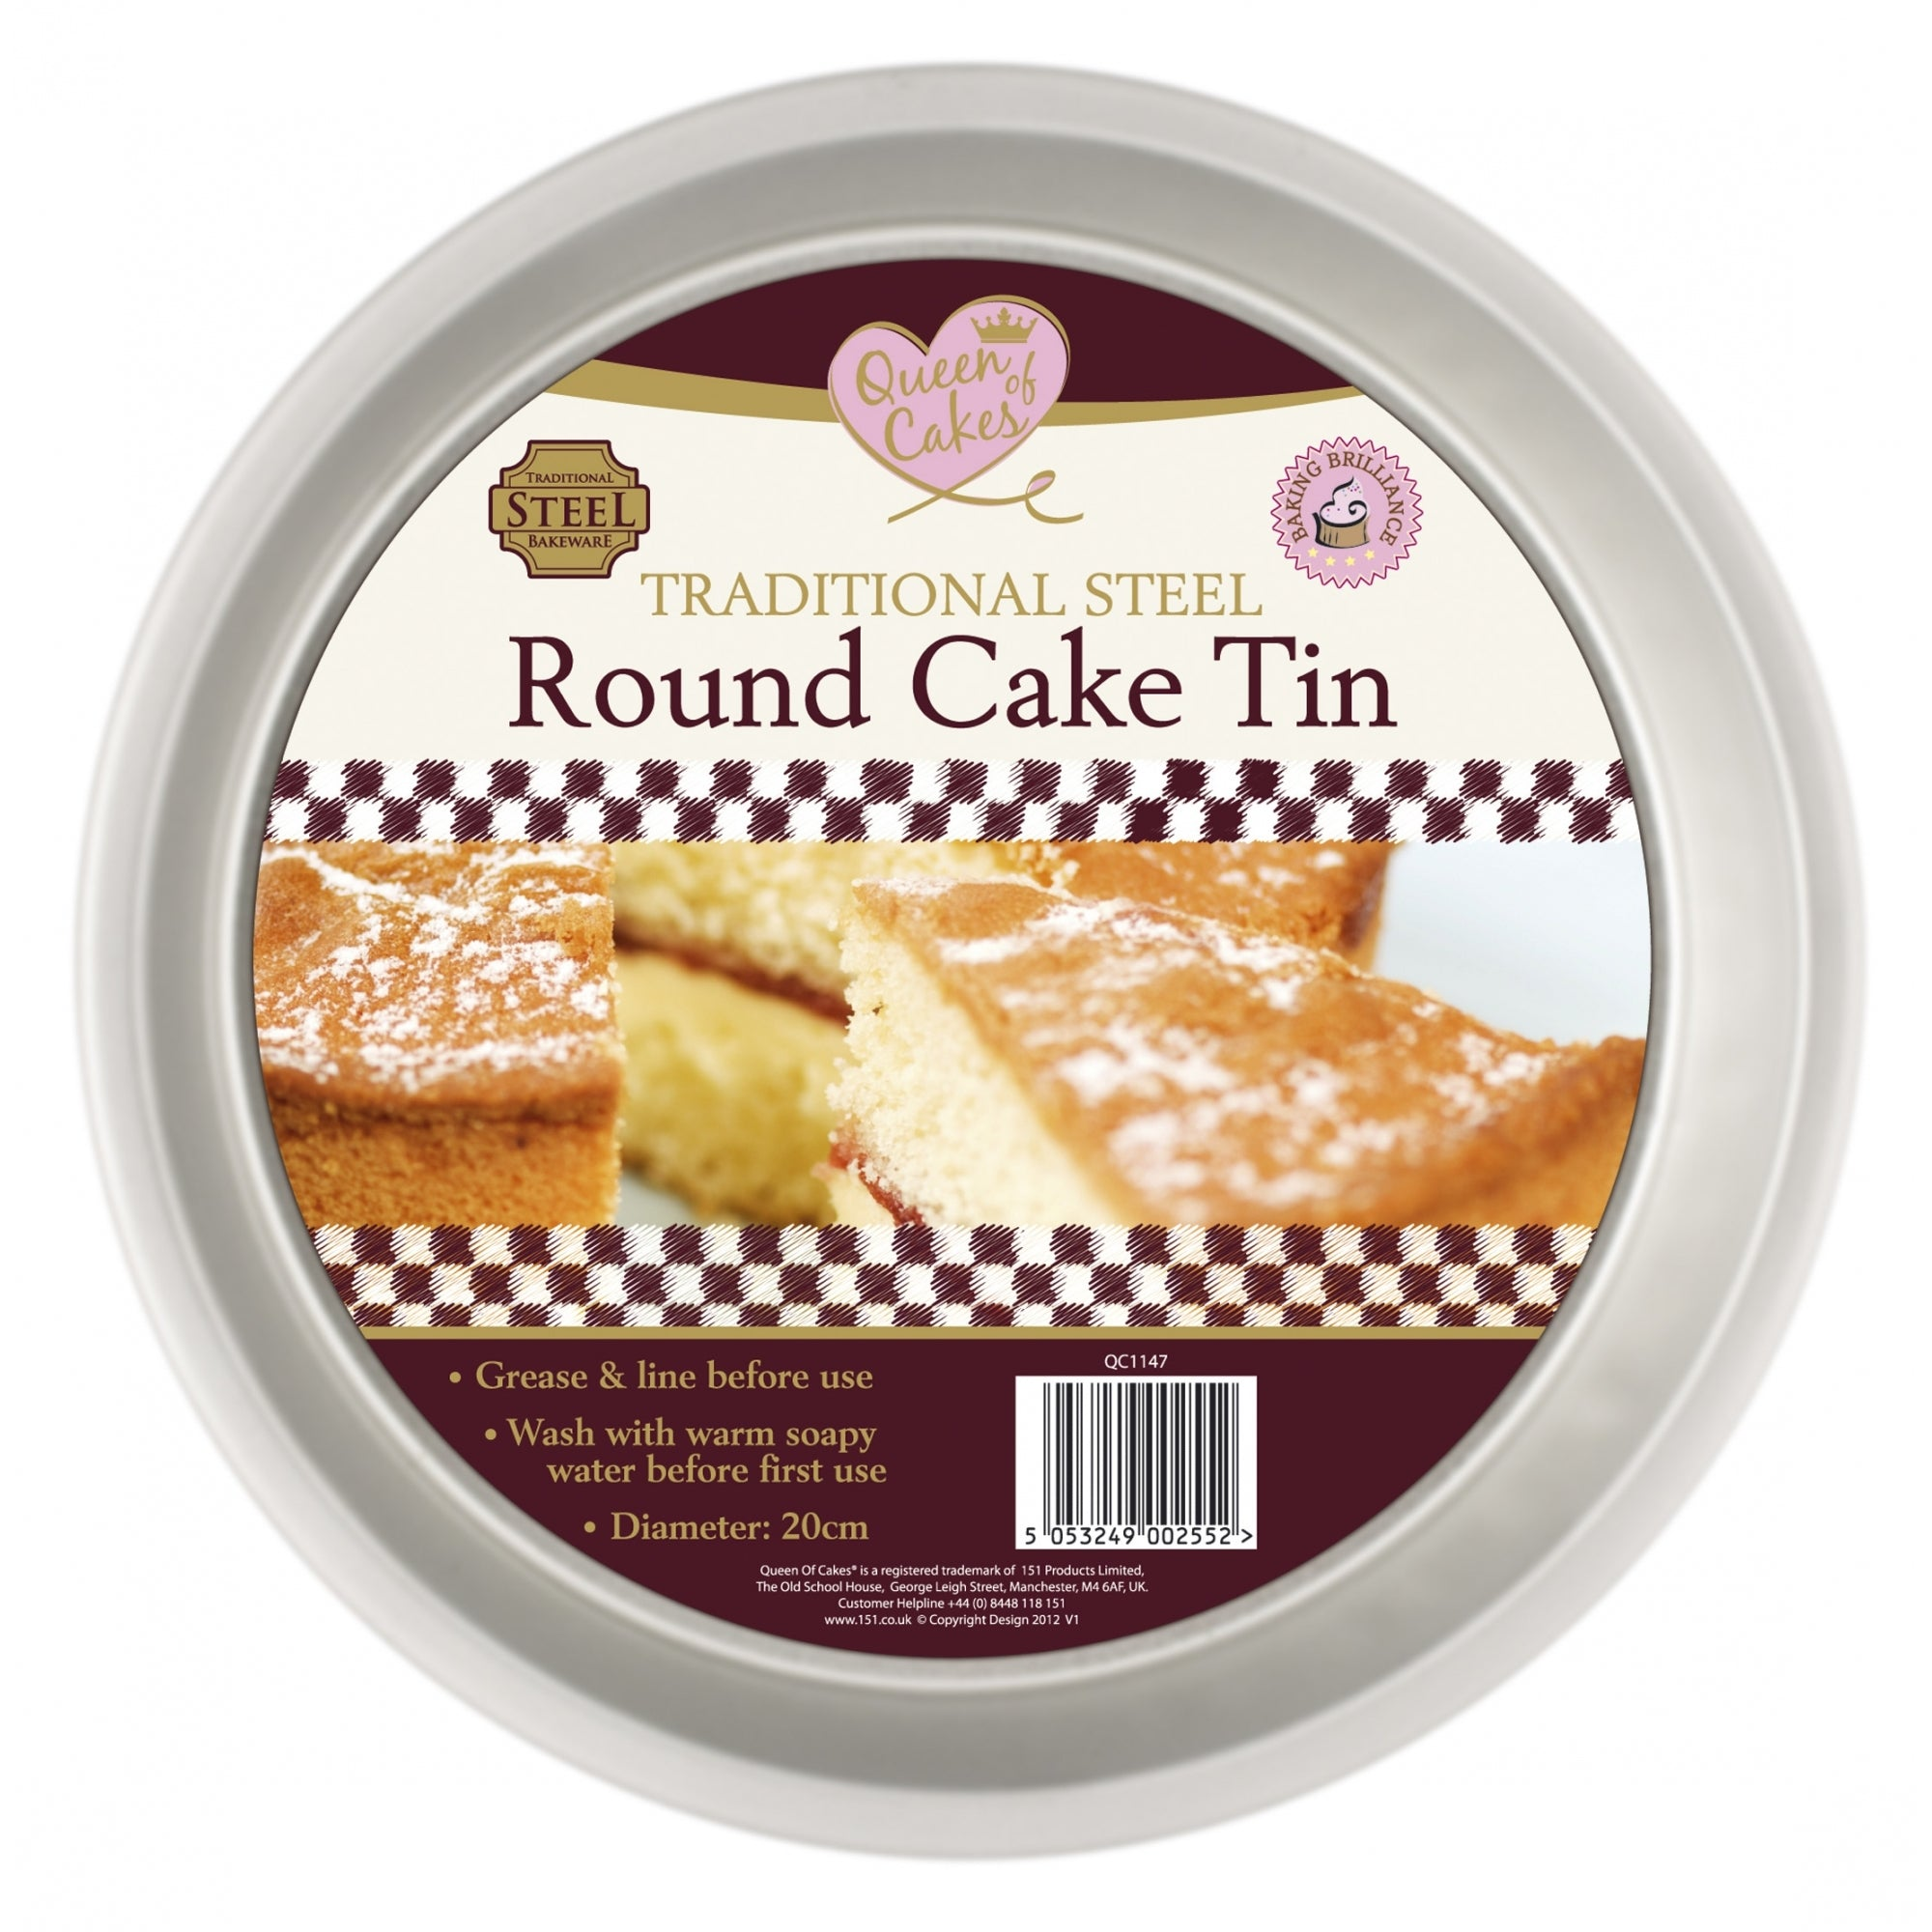 Taditional Steel Round Cake Tin